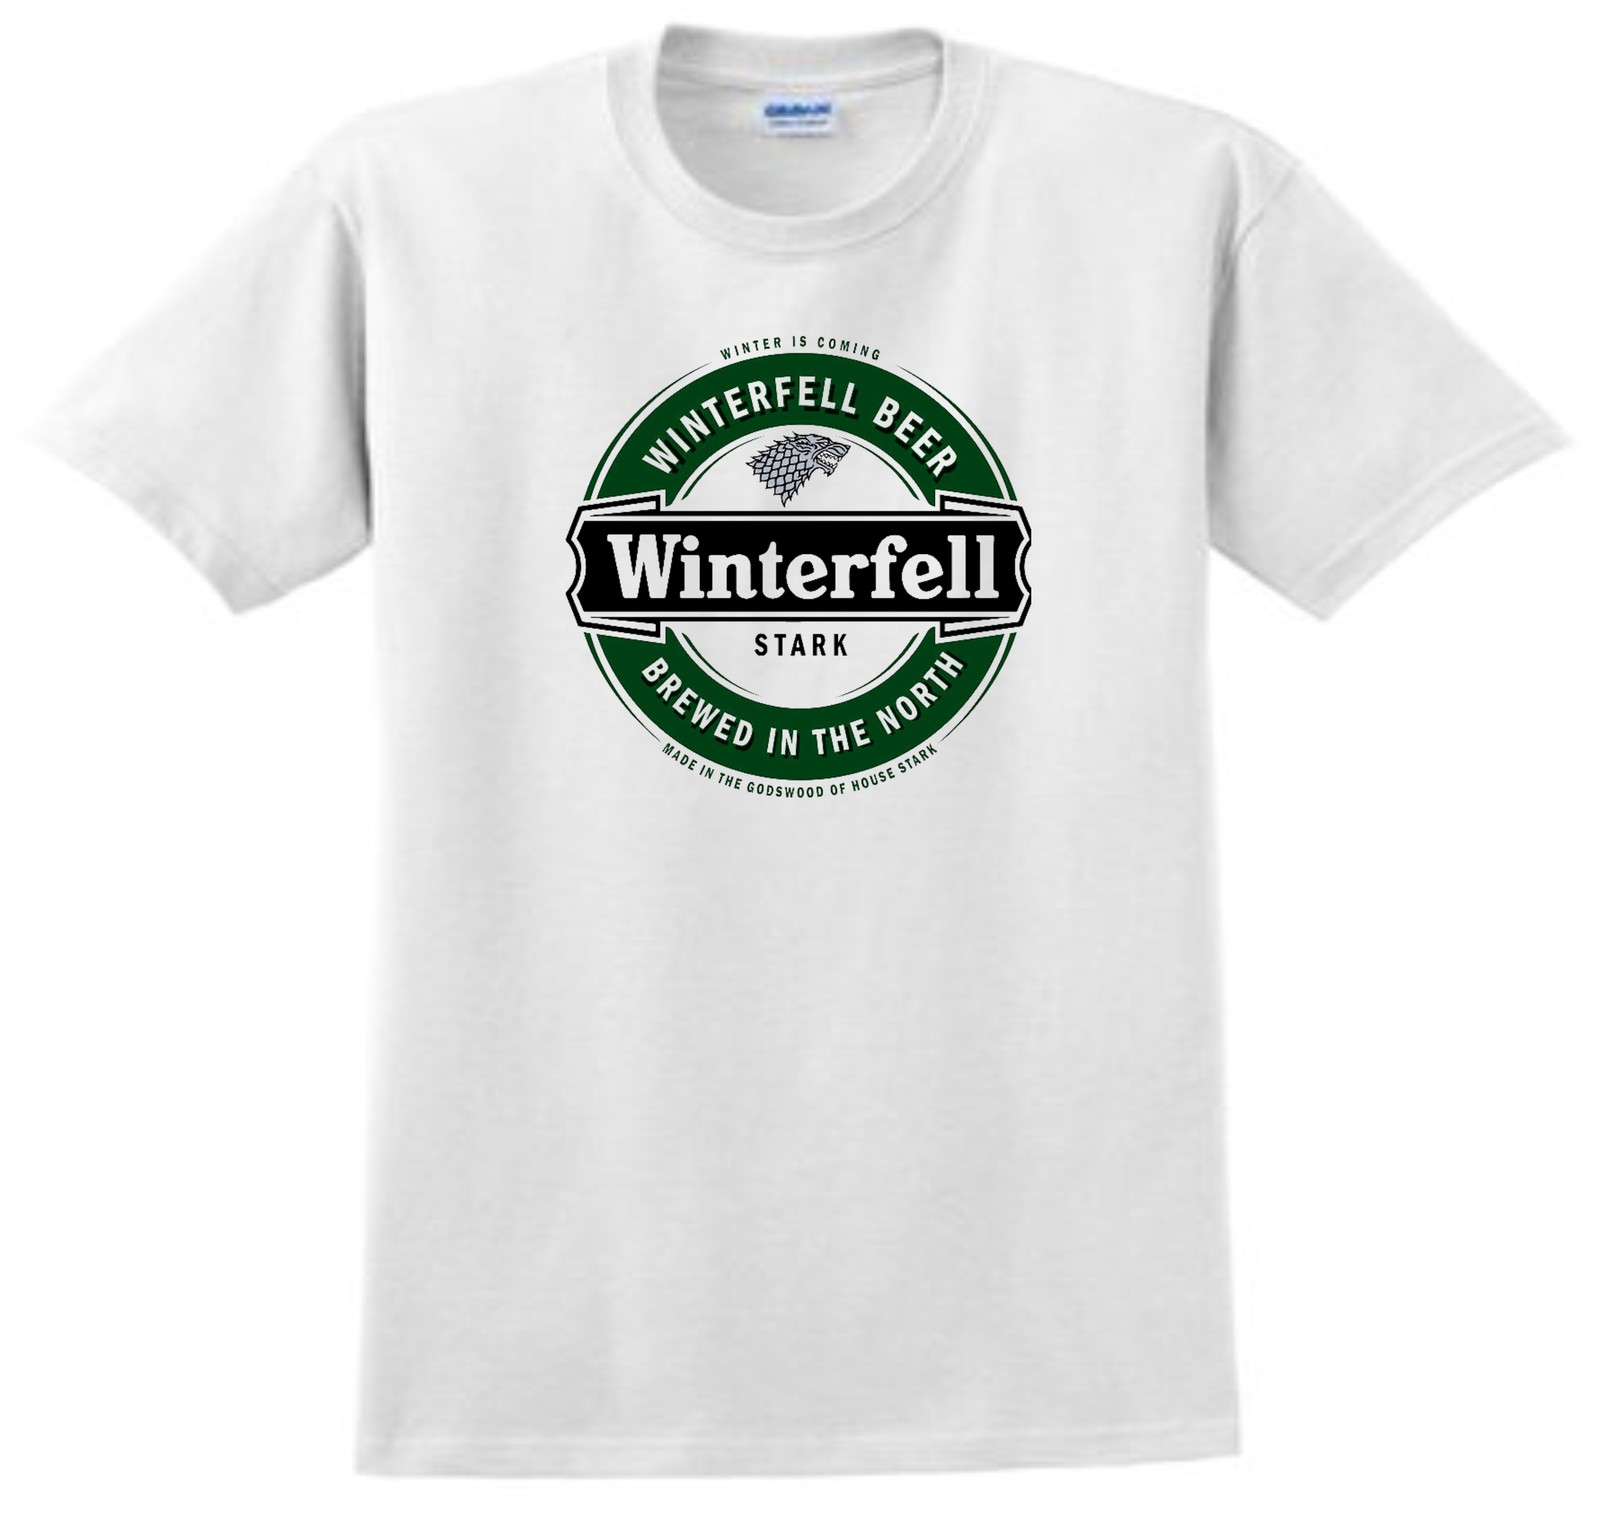 Game of Thrones Winterfell Beer T Shirt U Pick Size S M L XL 2XL 3XL 4XL 5XL